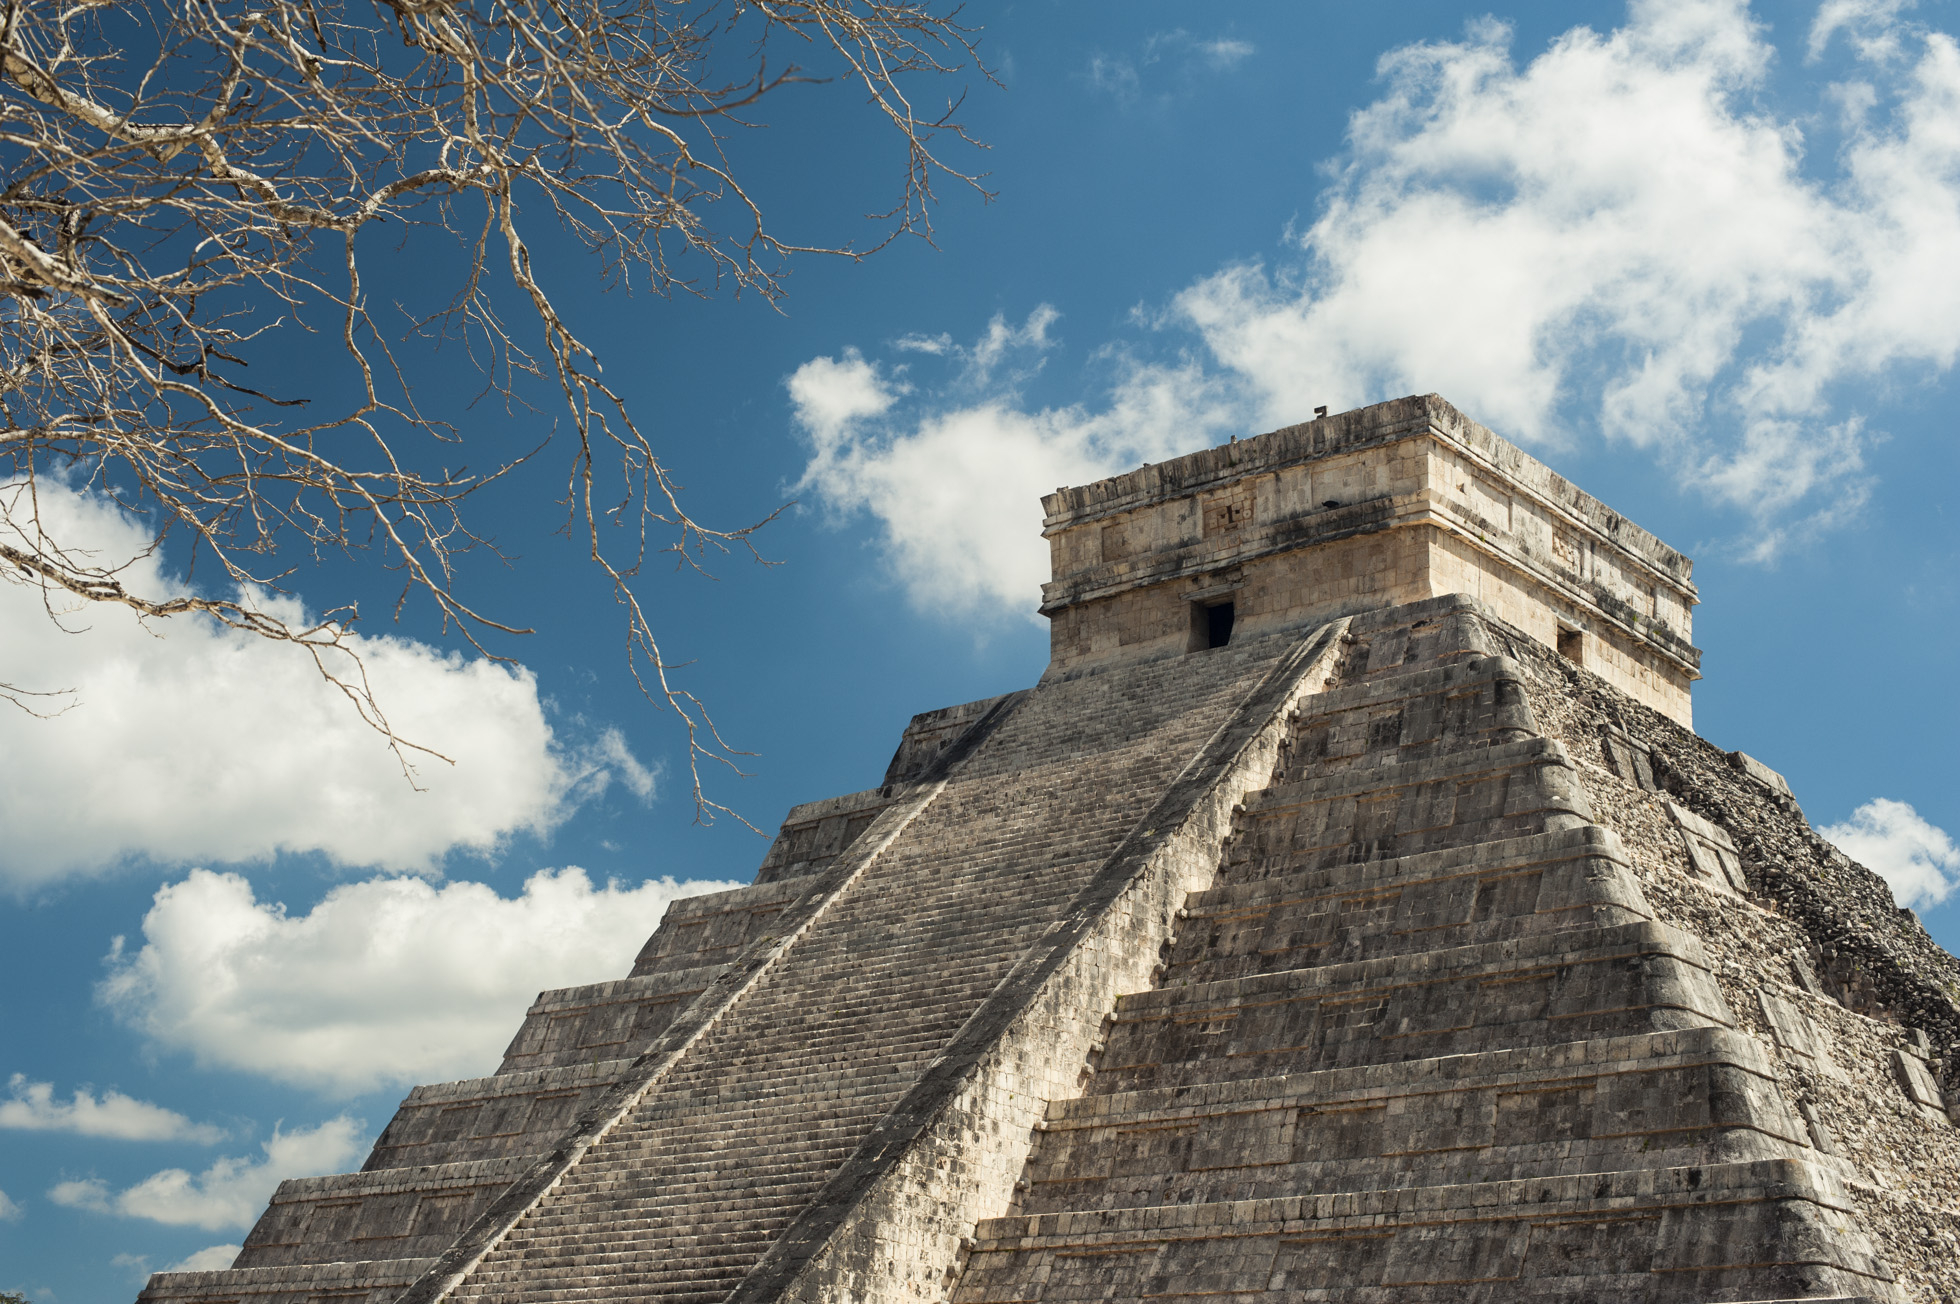 Mexico, Belize & Guatemala – Part One